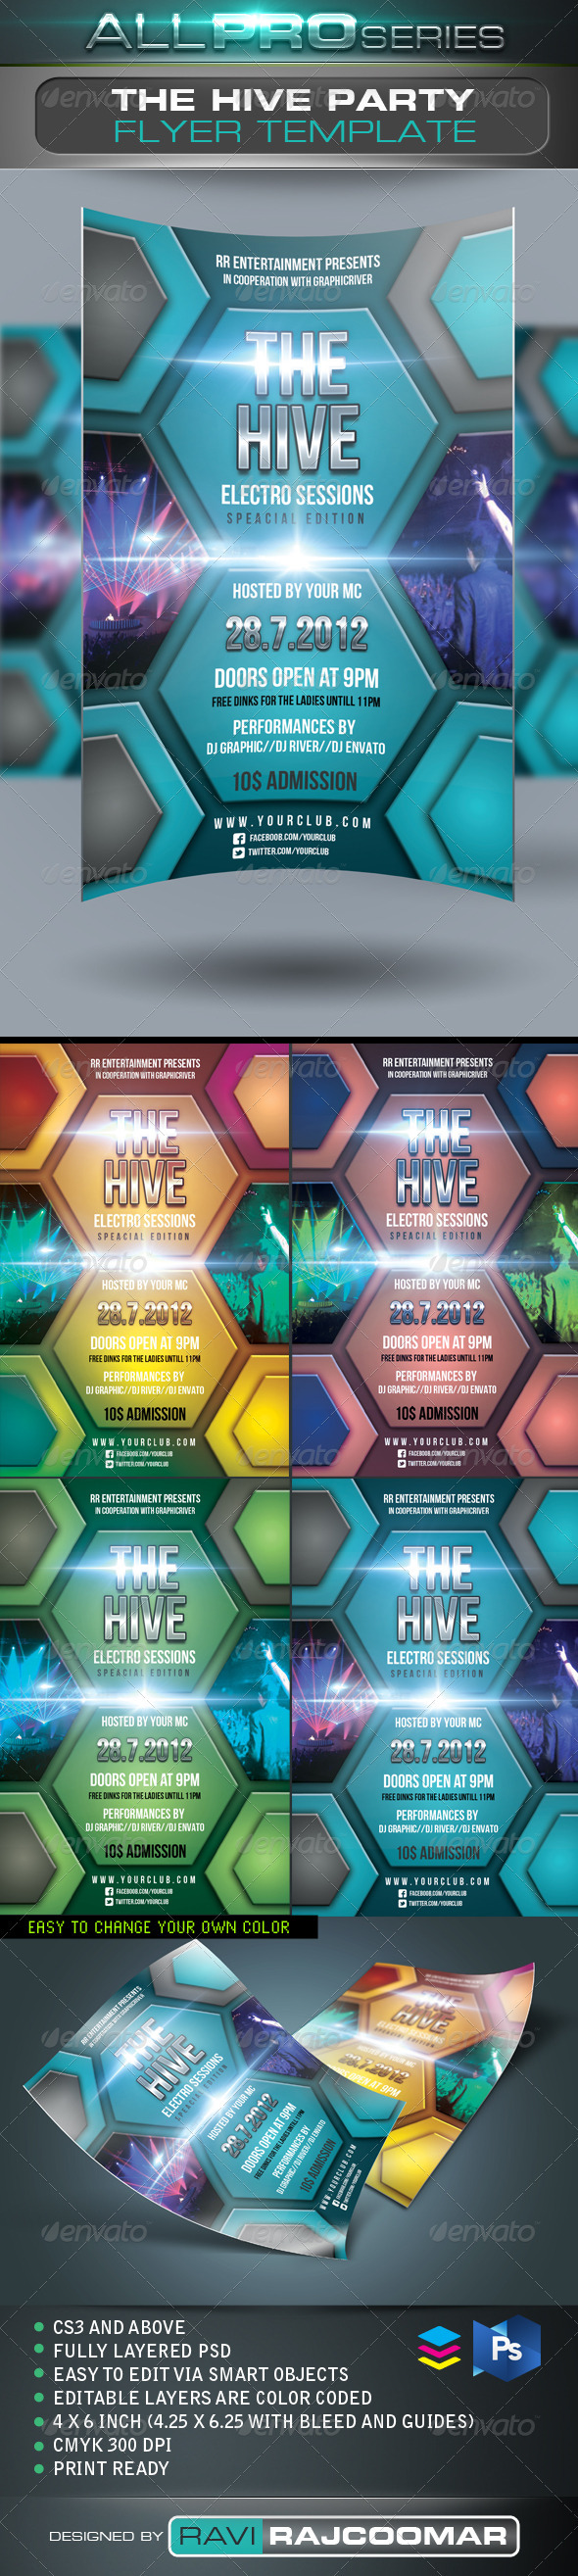 The Hive Party Flyer Template - Events Flyers